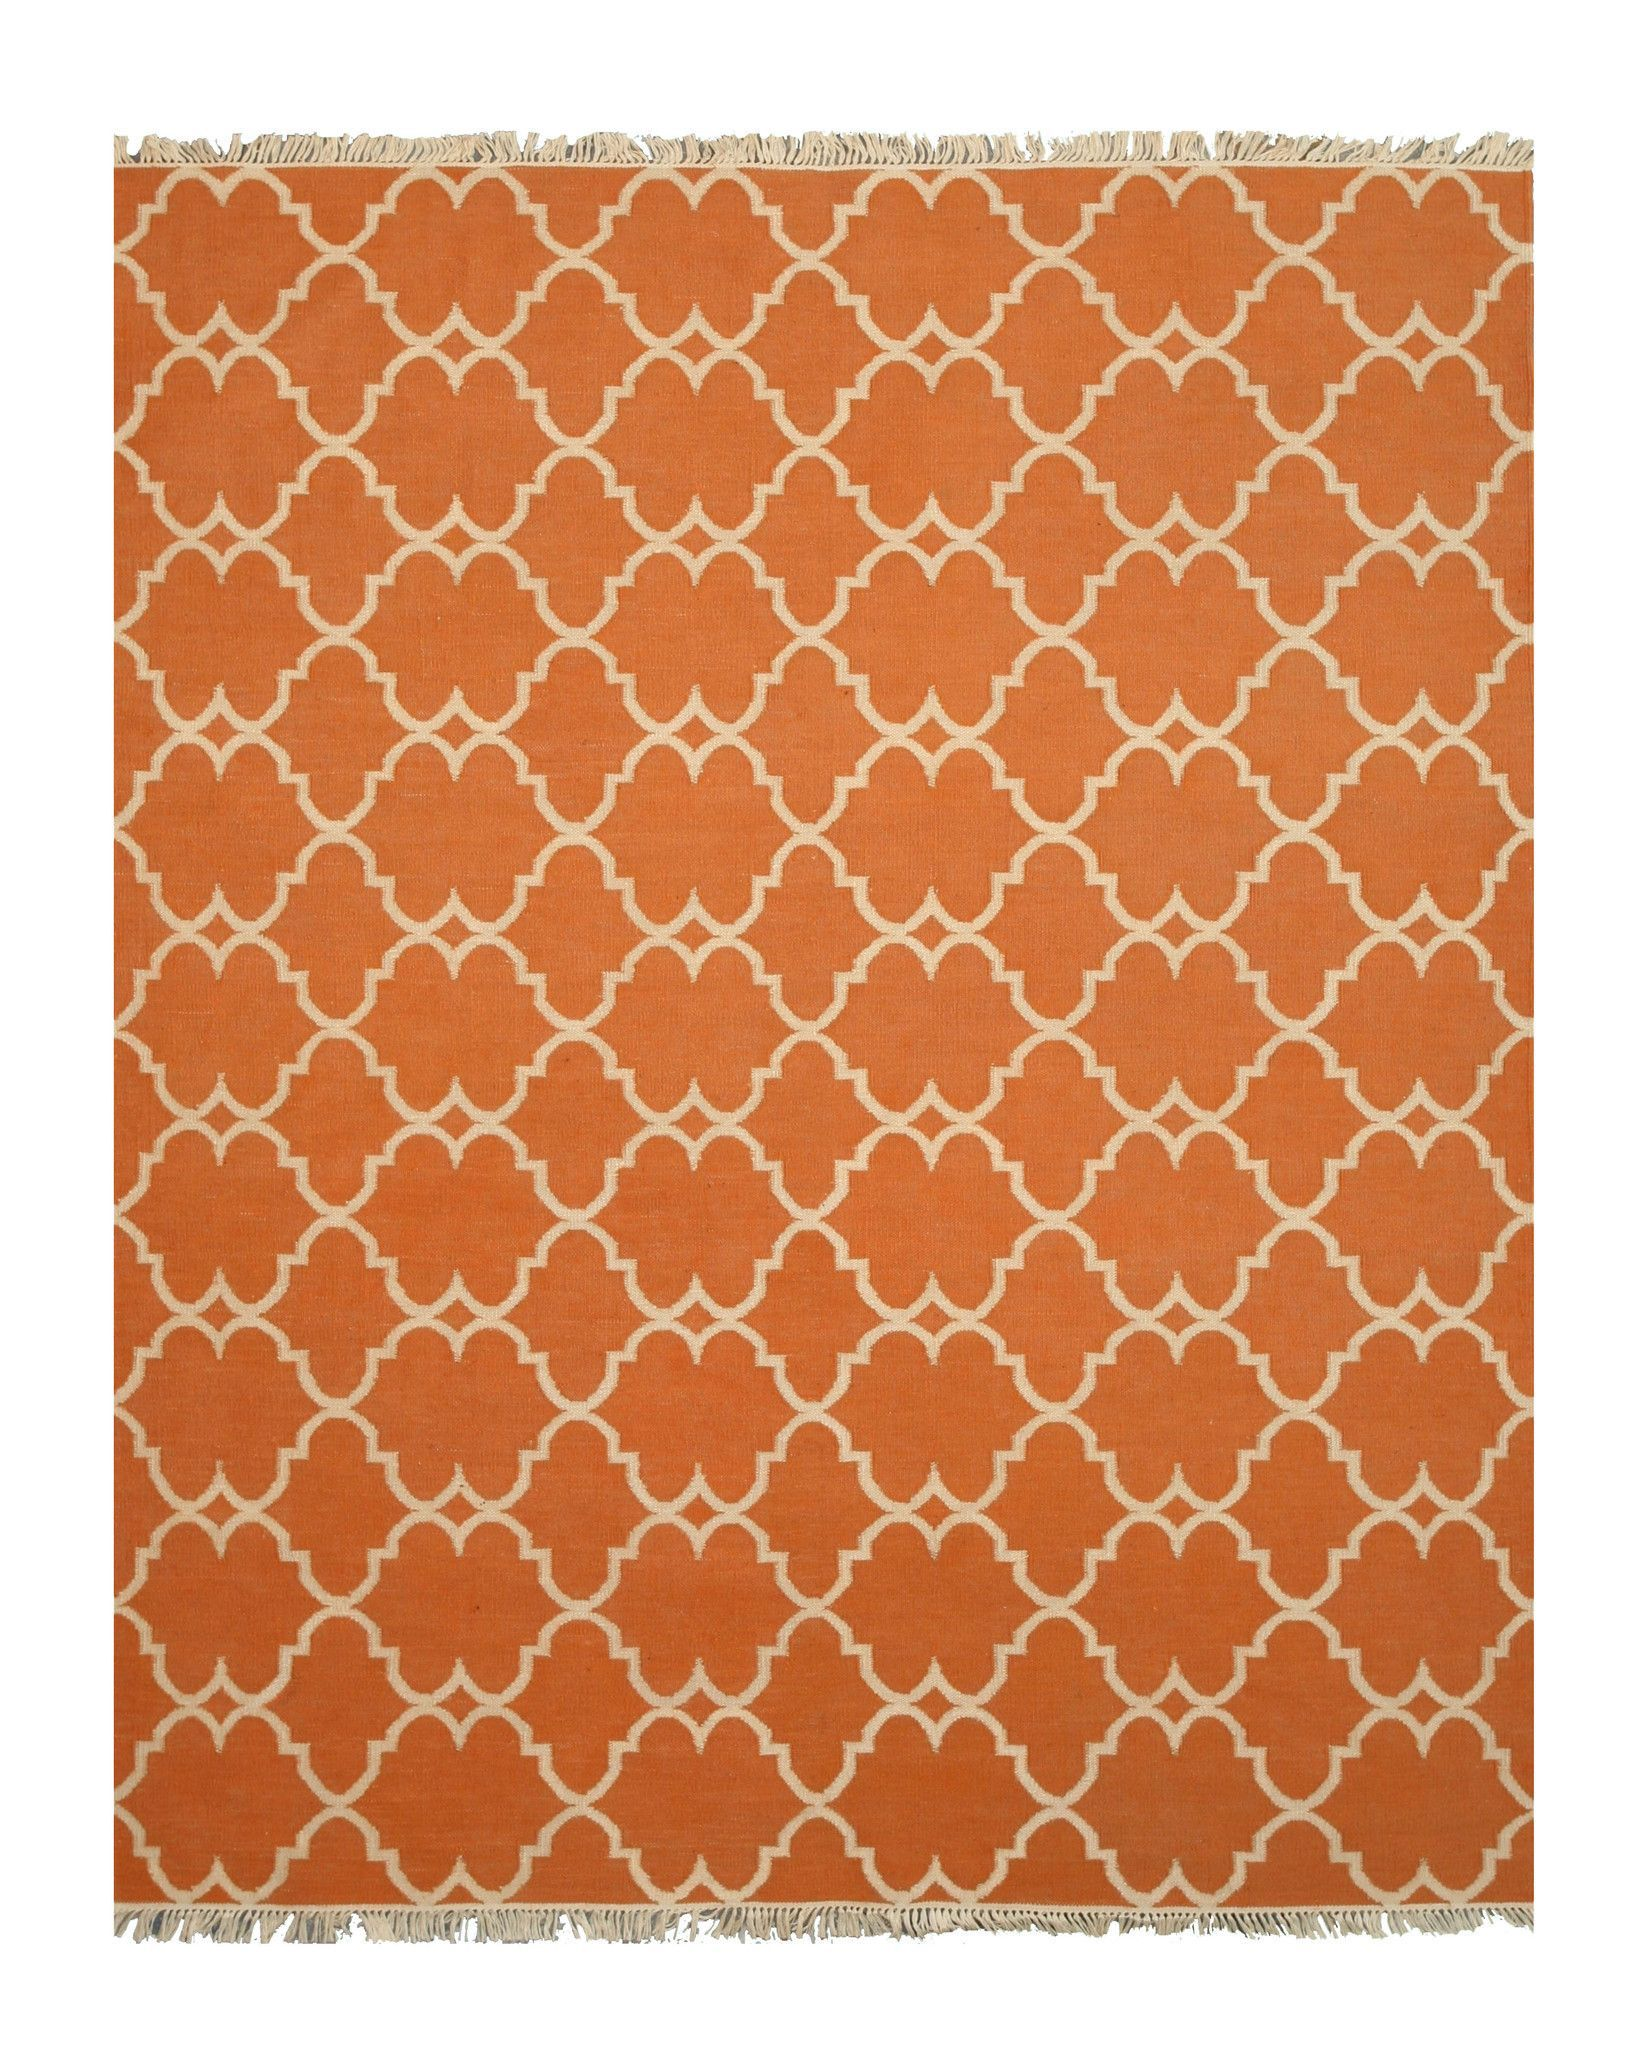 Handmade Polyester Orange Transitional Trellis Reversible Moroccan